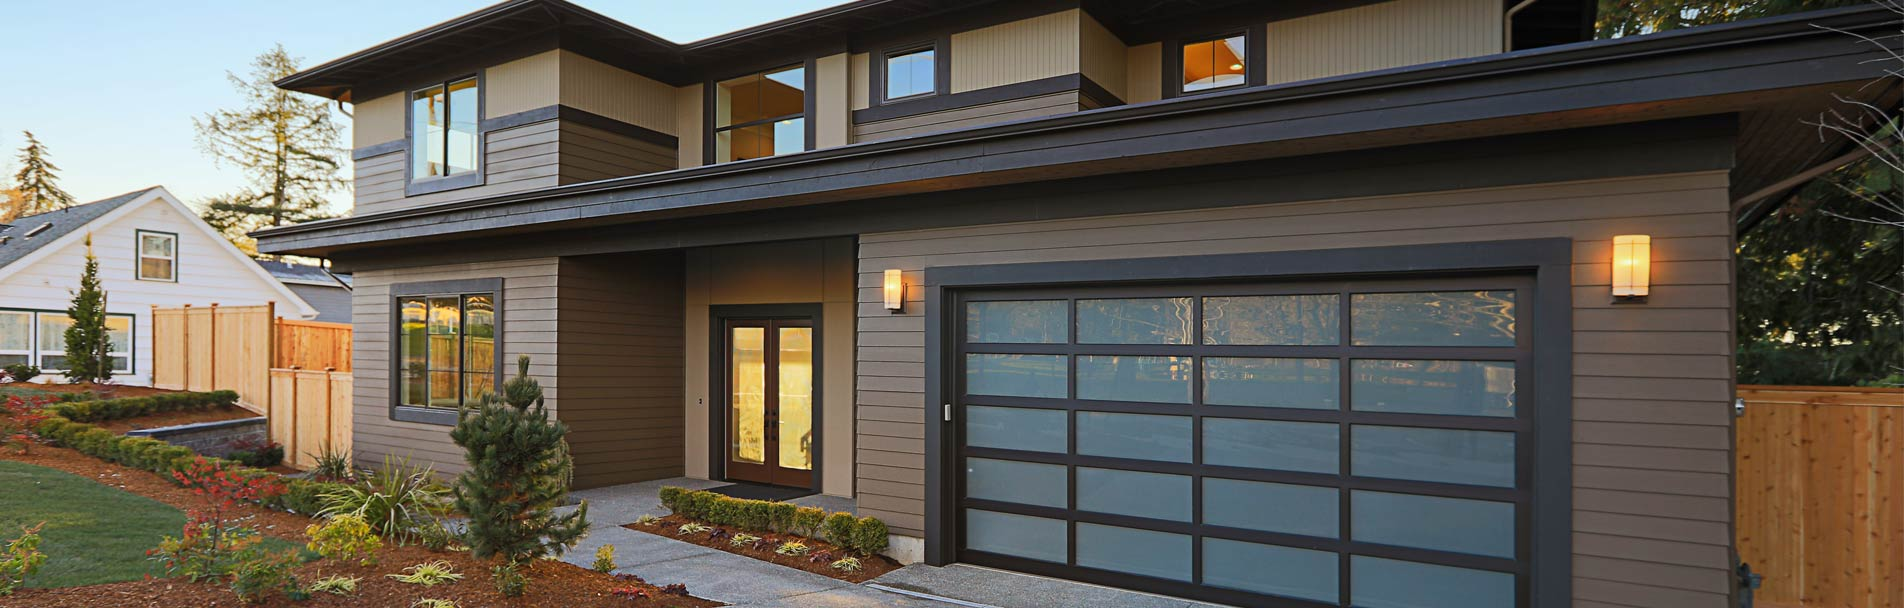 Golden Garage Door Service Sugar Land, TX 281-595-7046